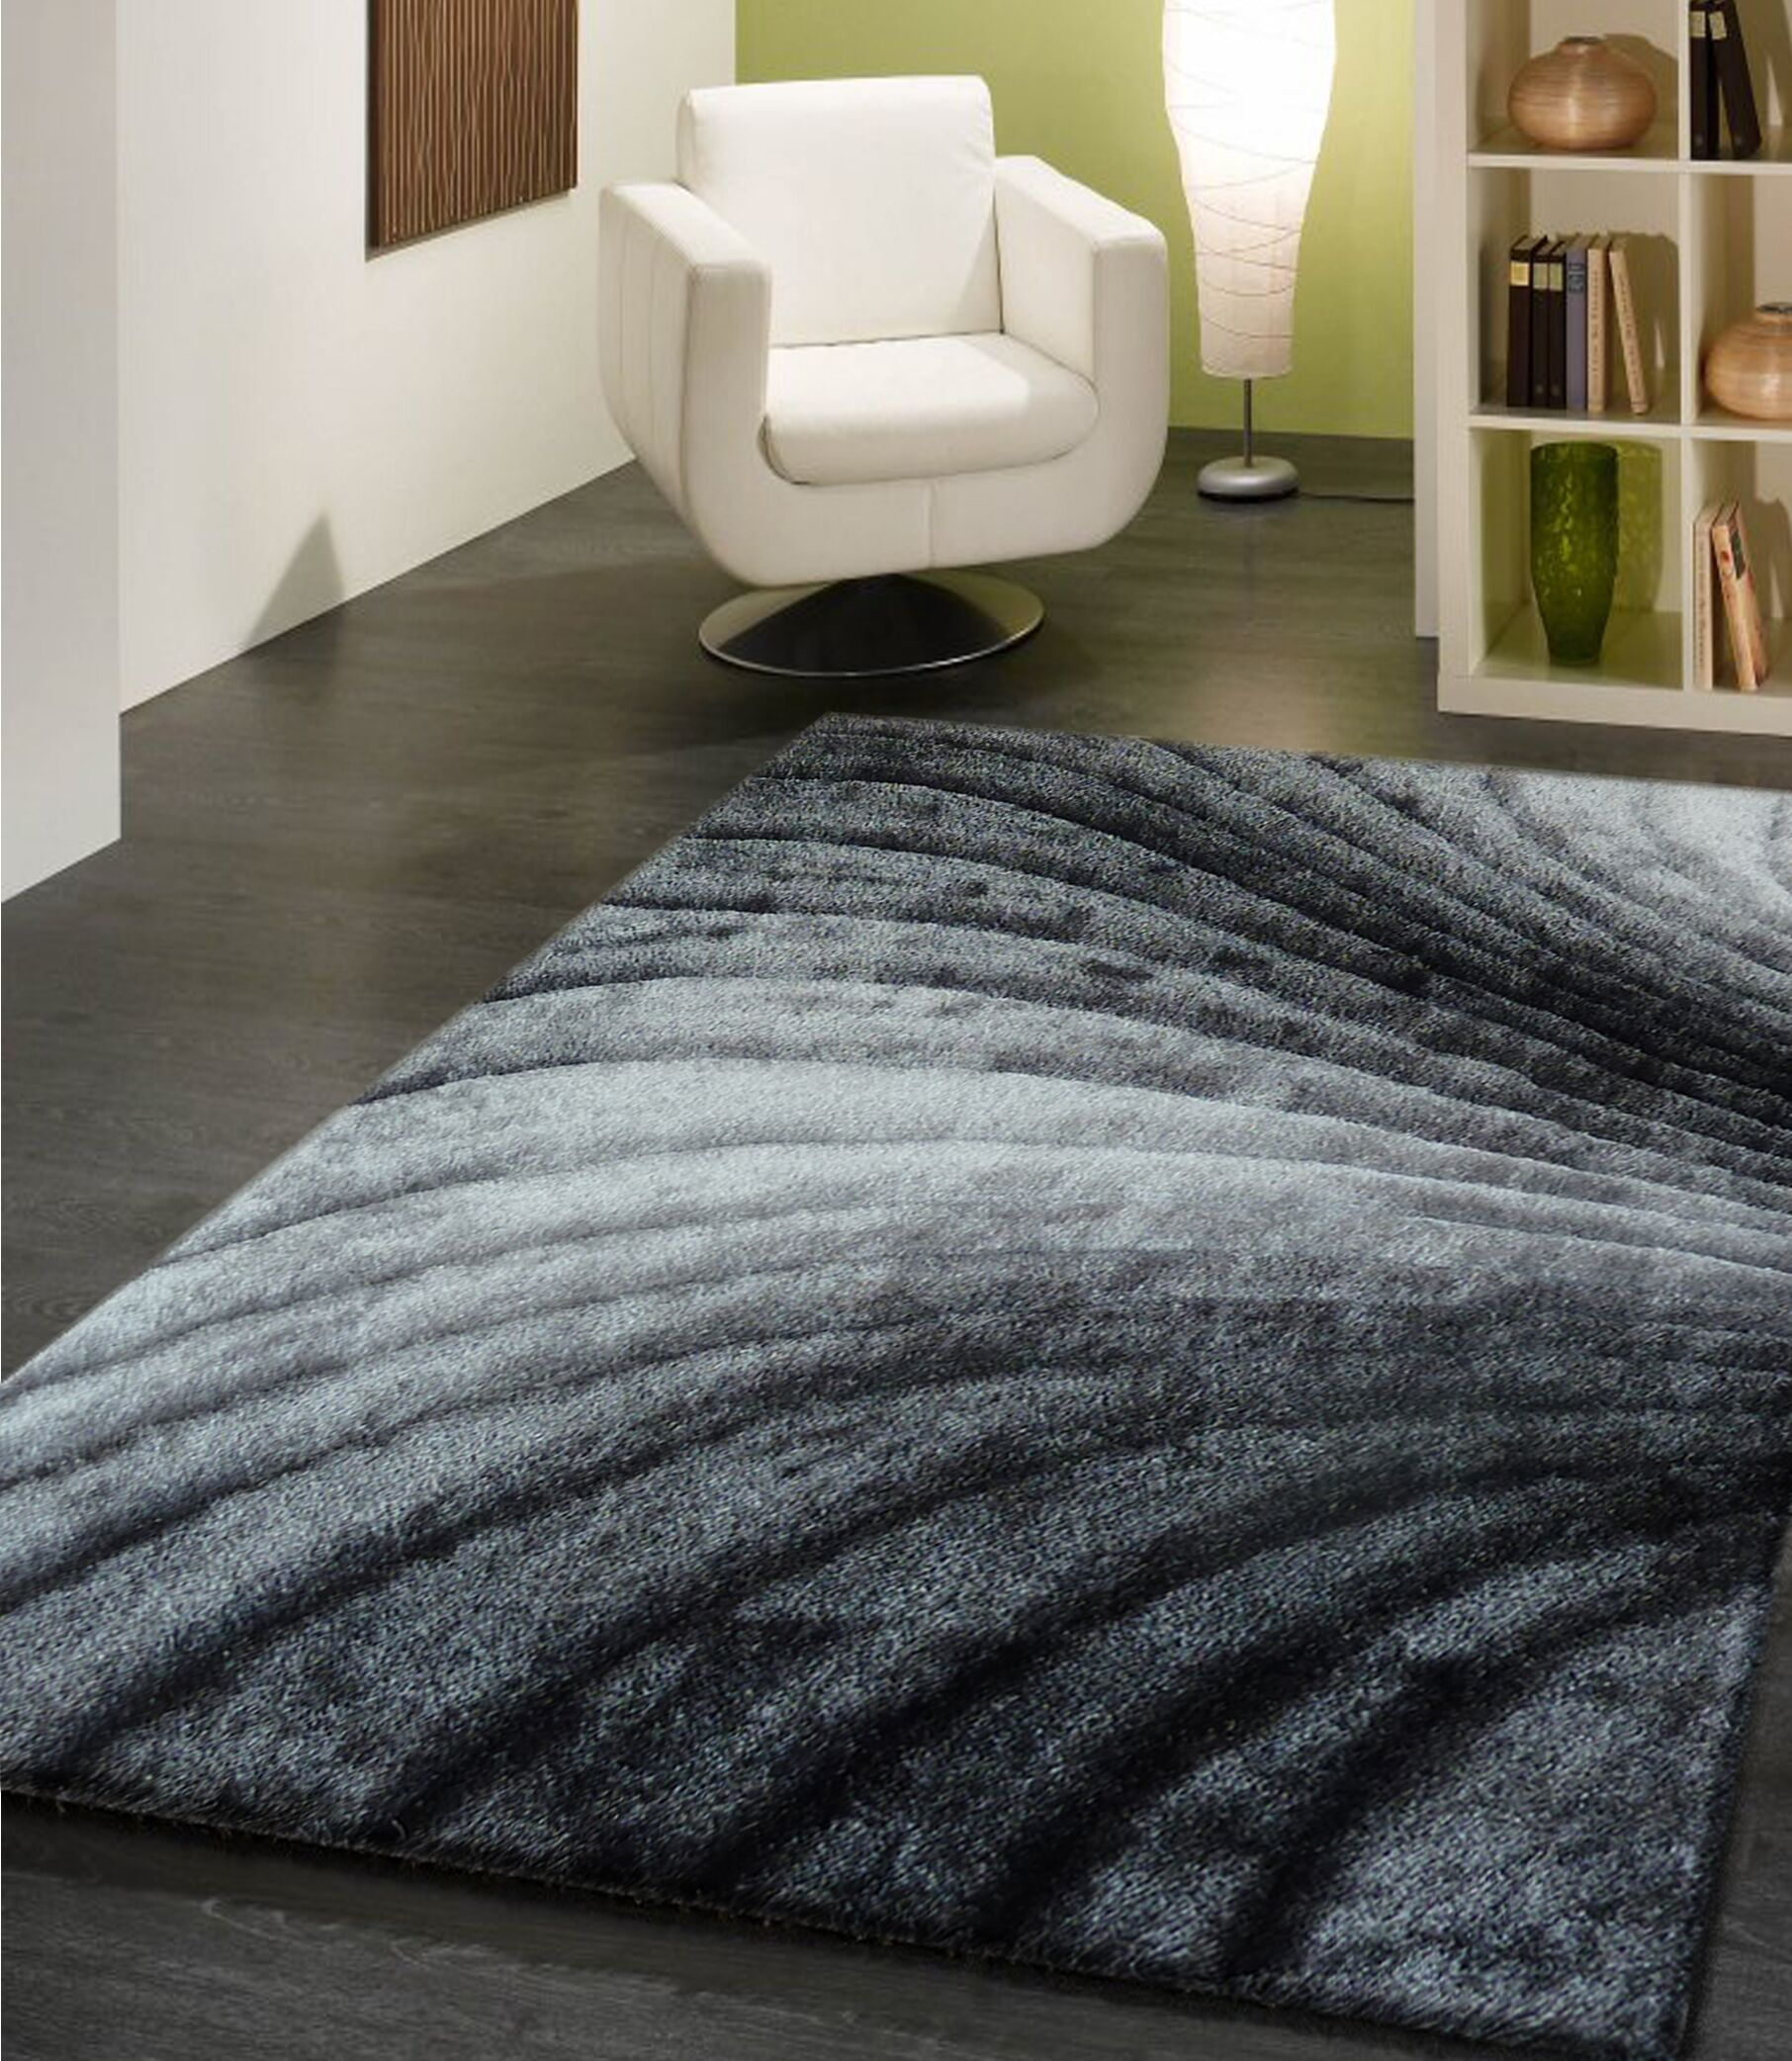 Pavonia Hand-Tufted Gray Area Rug Rug Size: Rectangle 7'6